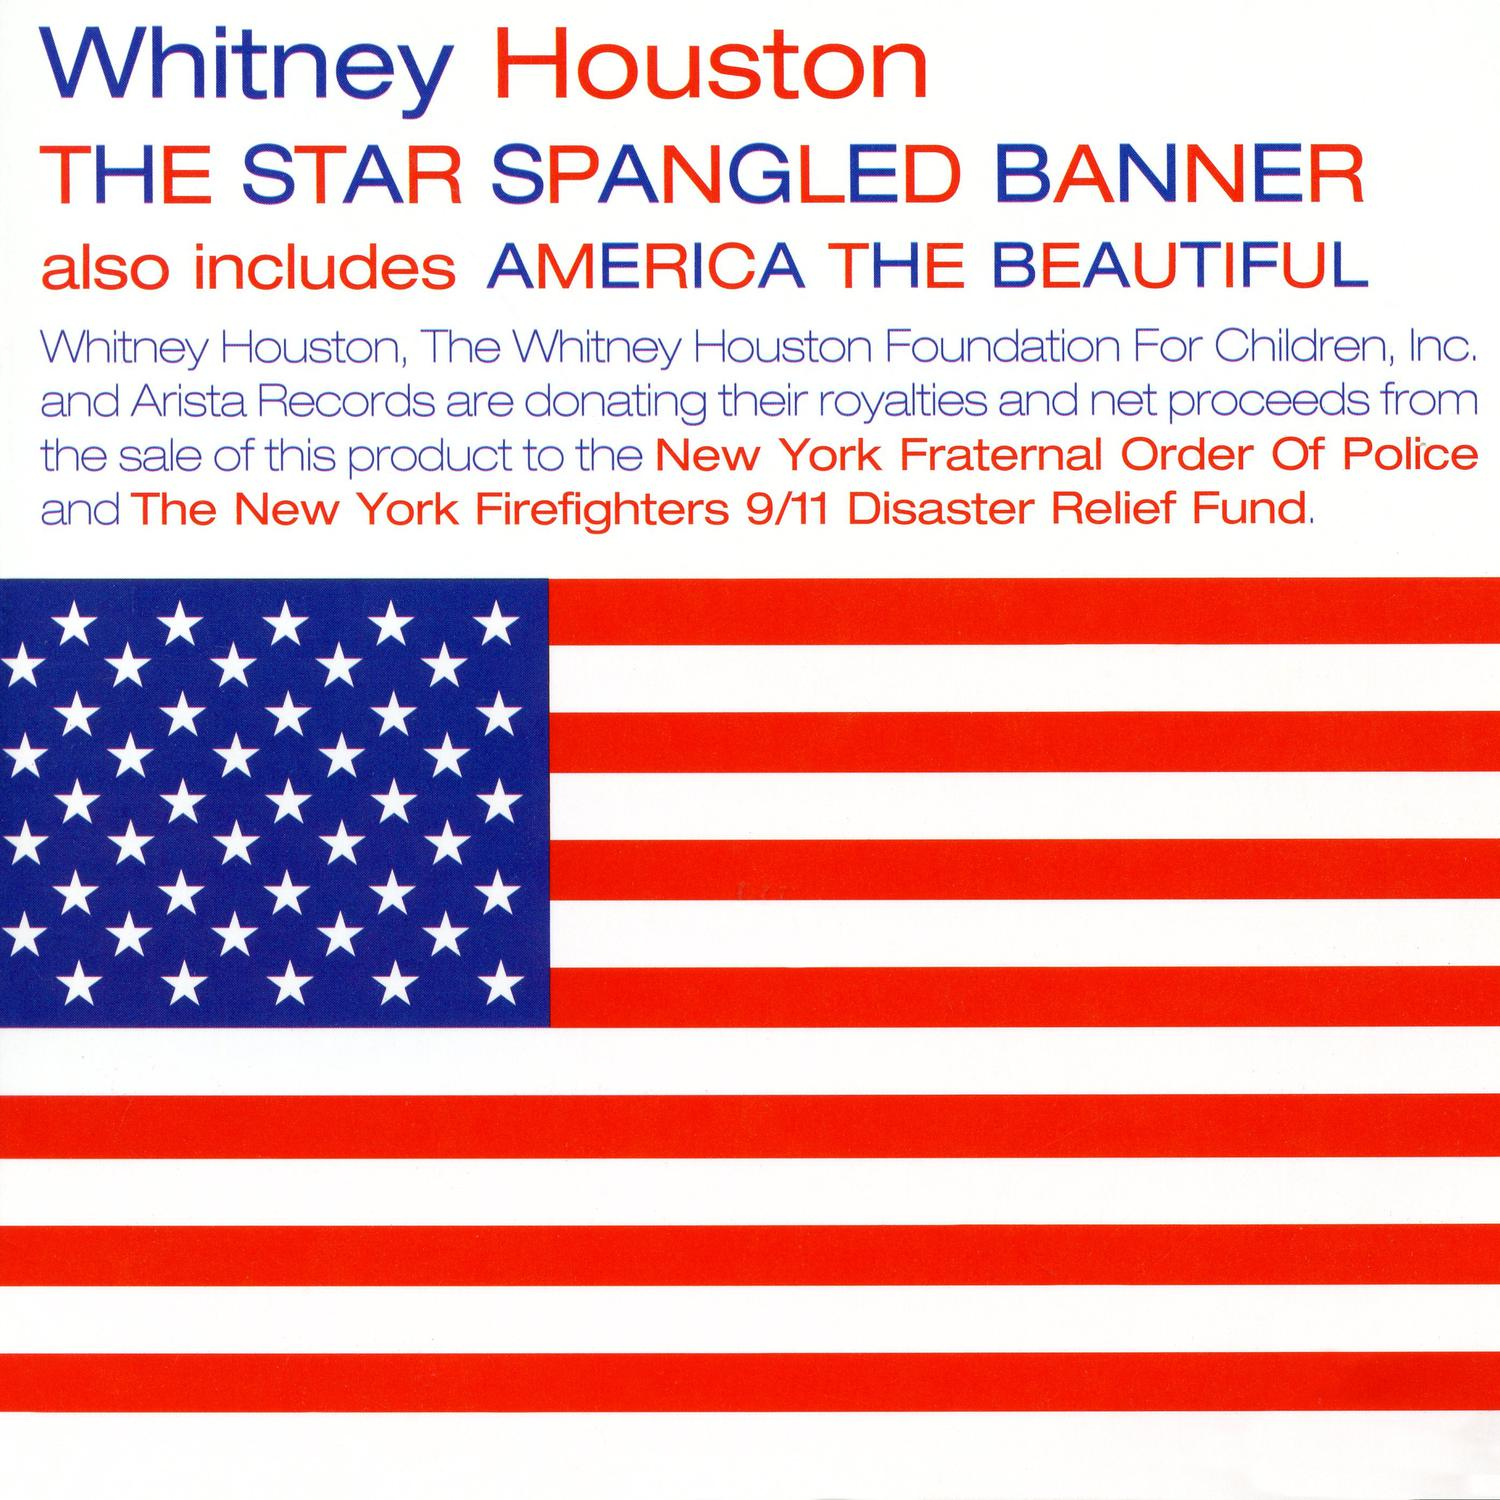 Whitney Houston - The Star Spangled Banner 2001 CD single front cover